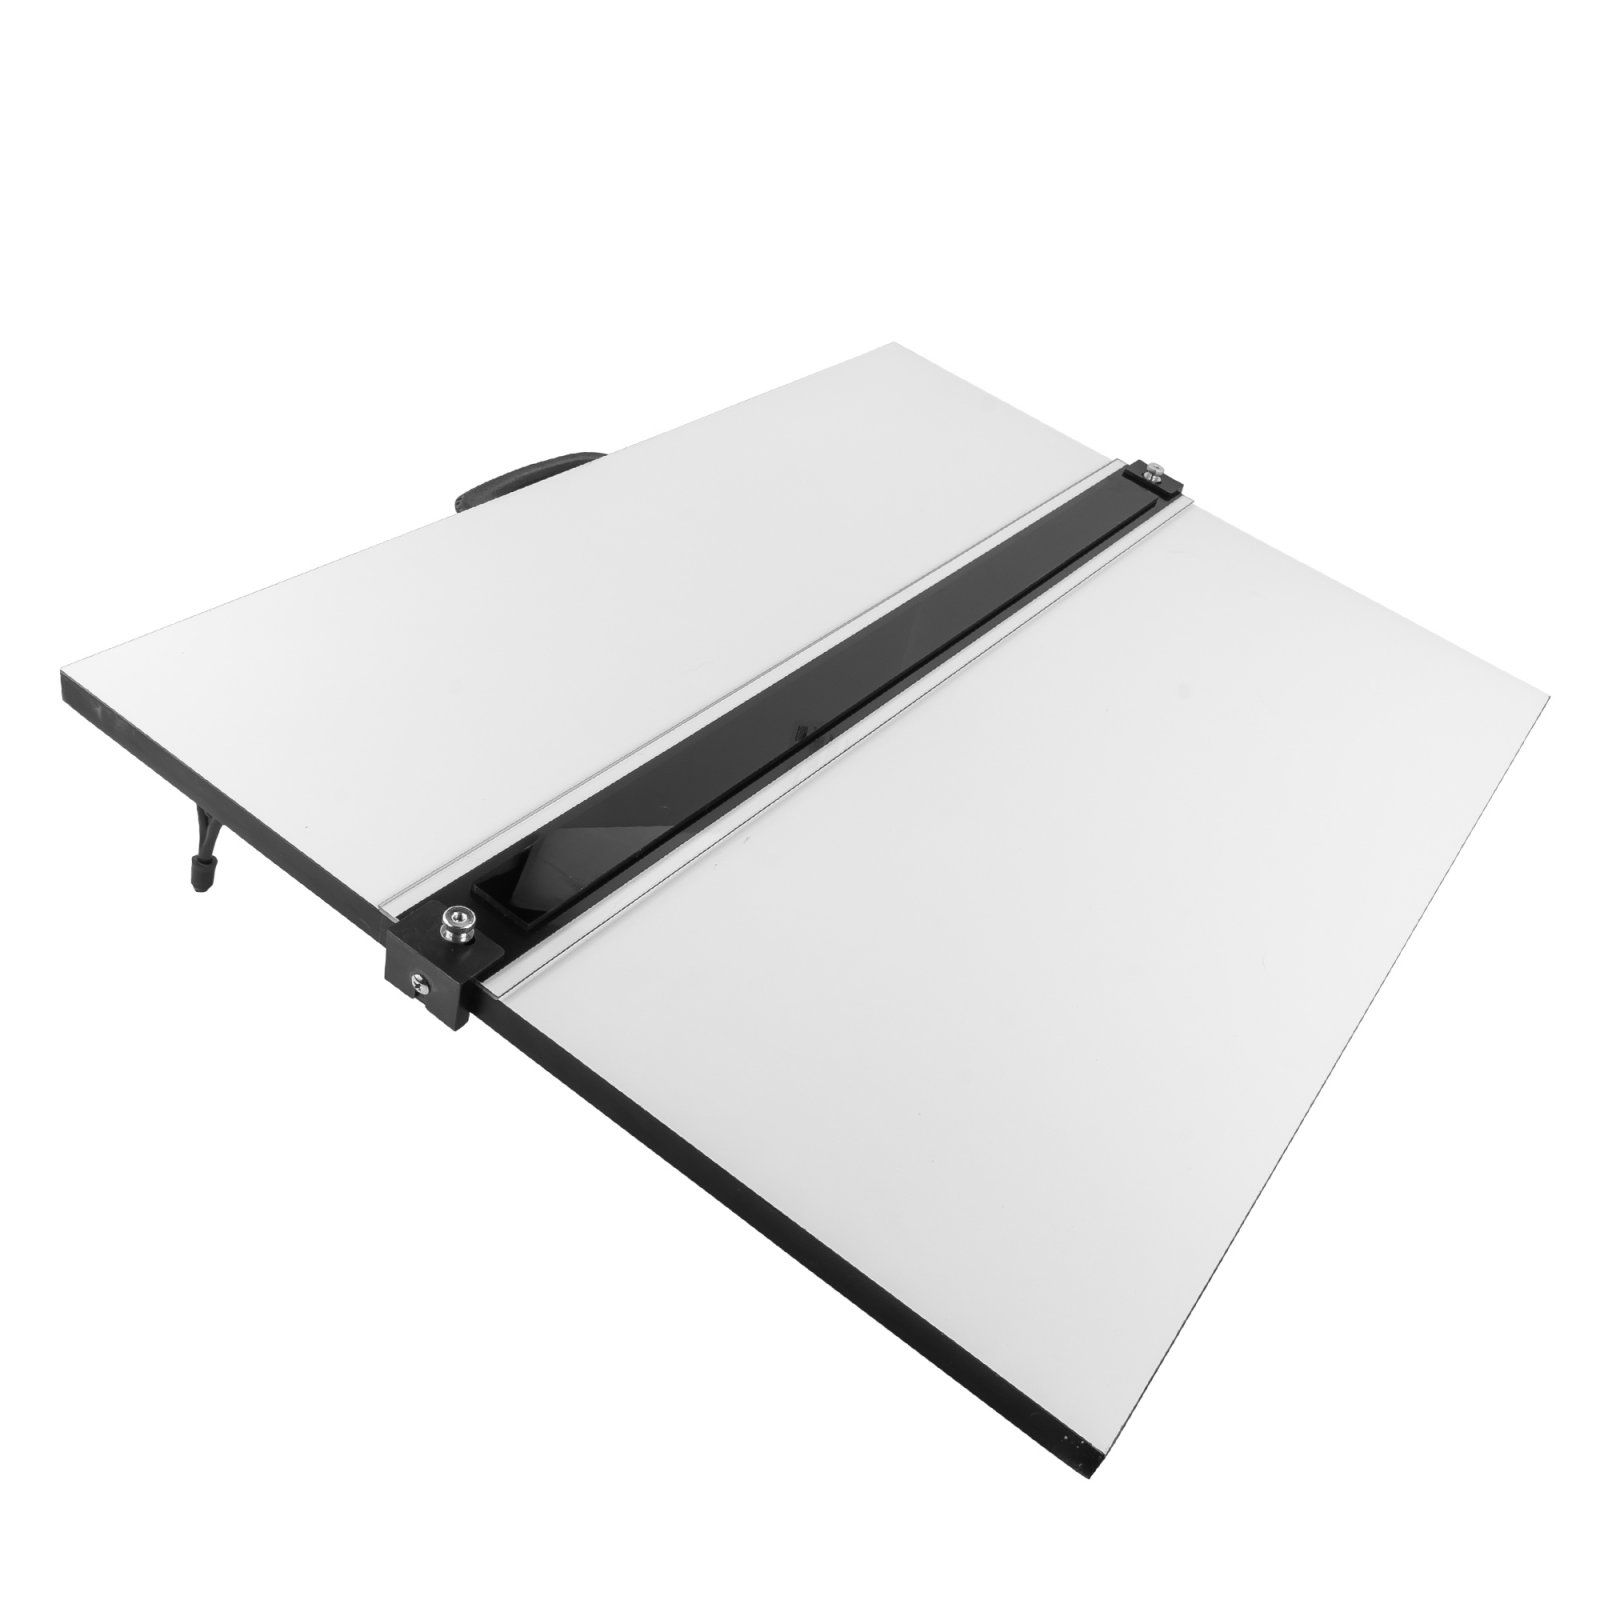 STB-series Portable Drawing Board w/ Parallel Bar